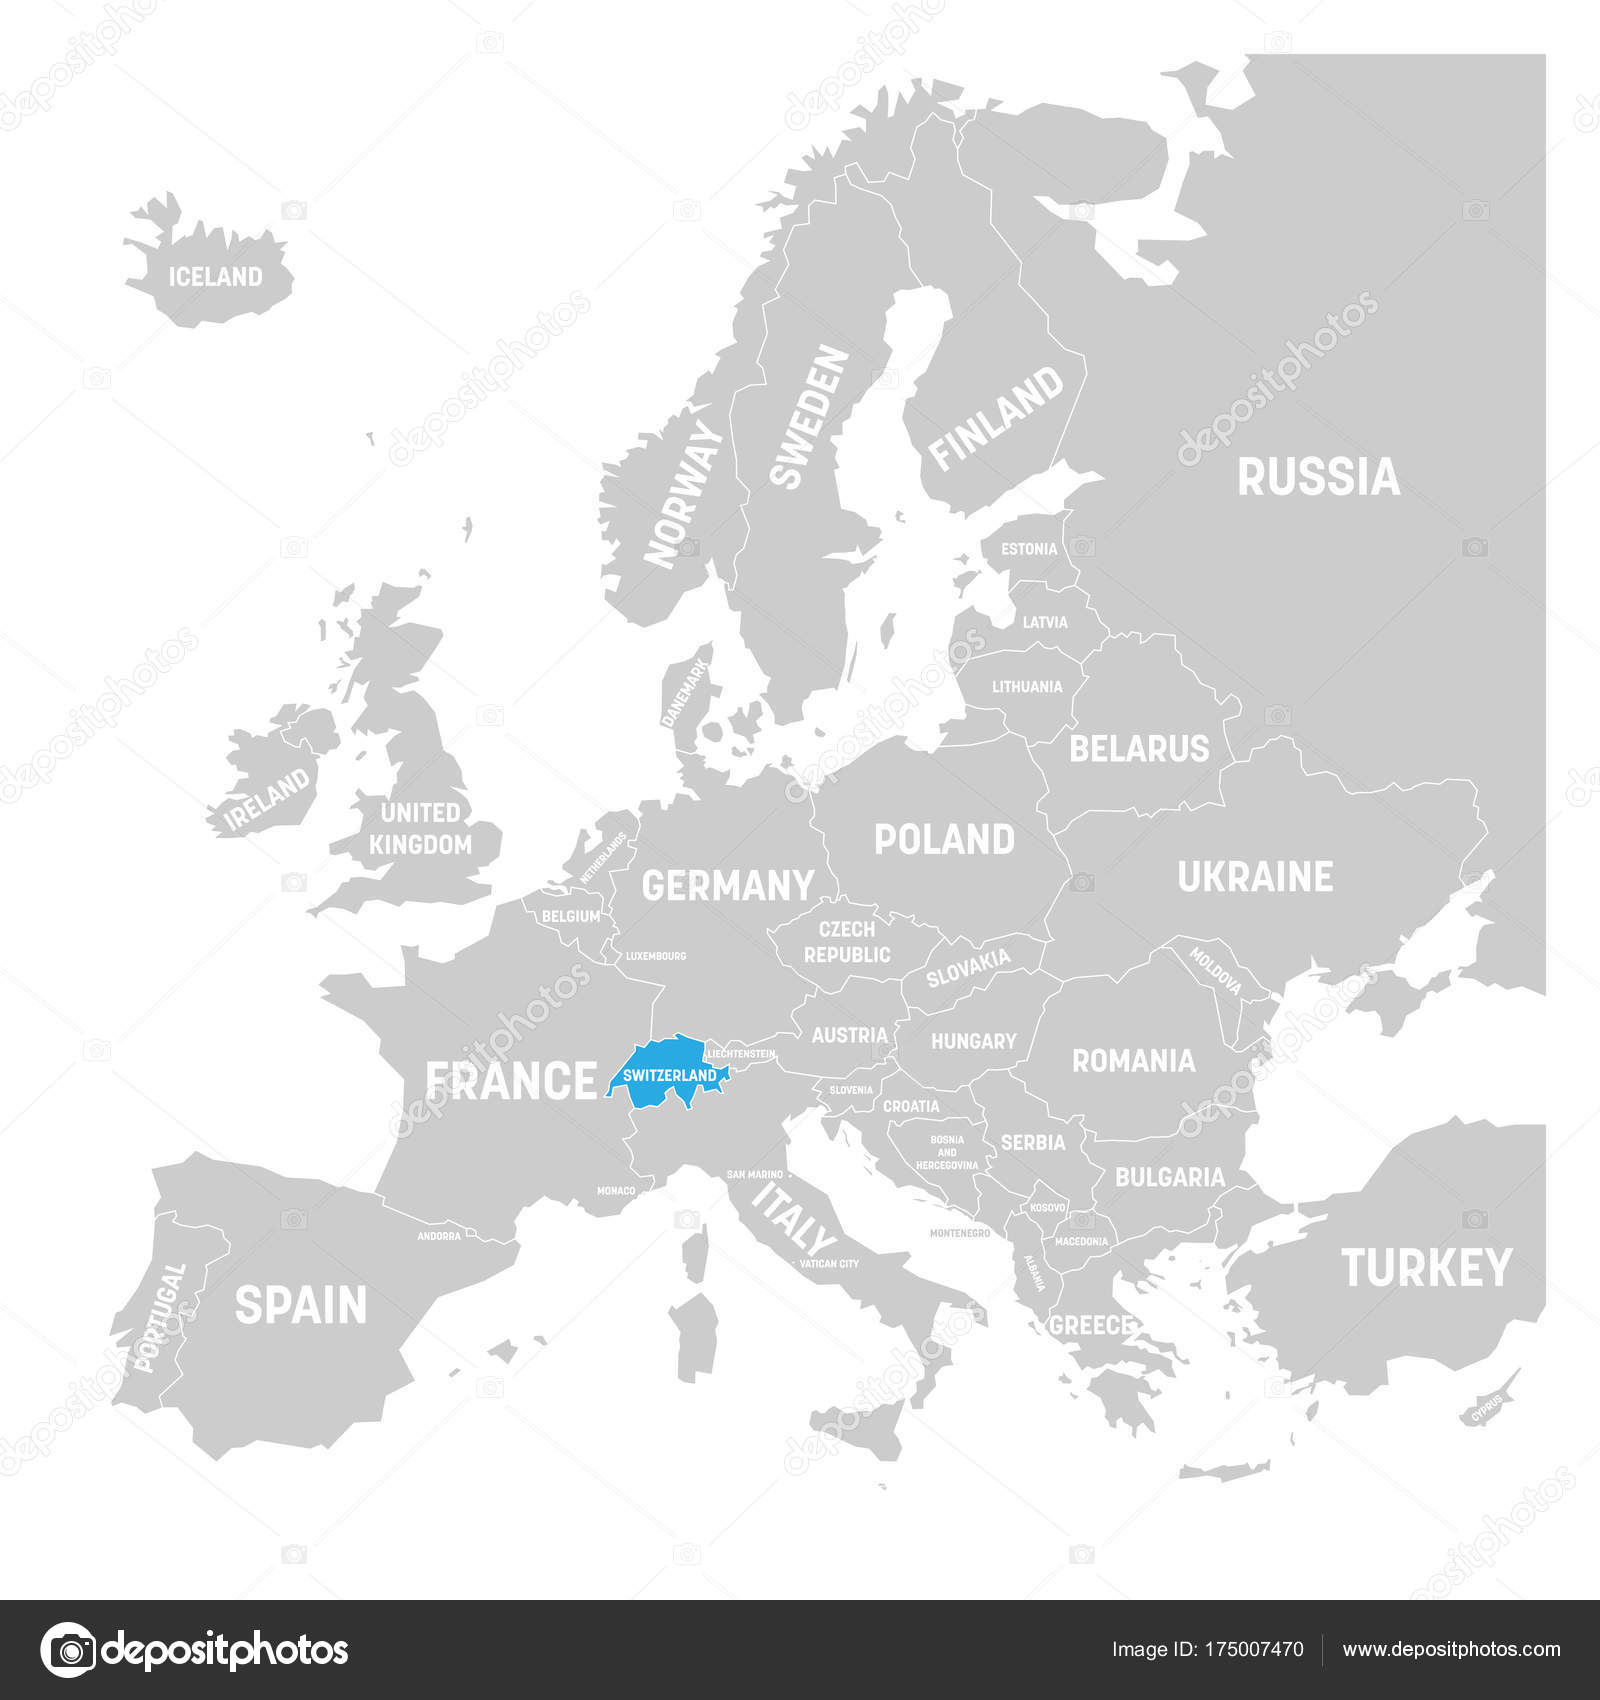 Switzerland marked by blue in grey political map of Europe Vector